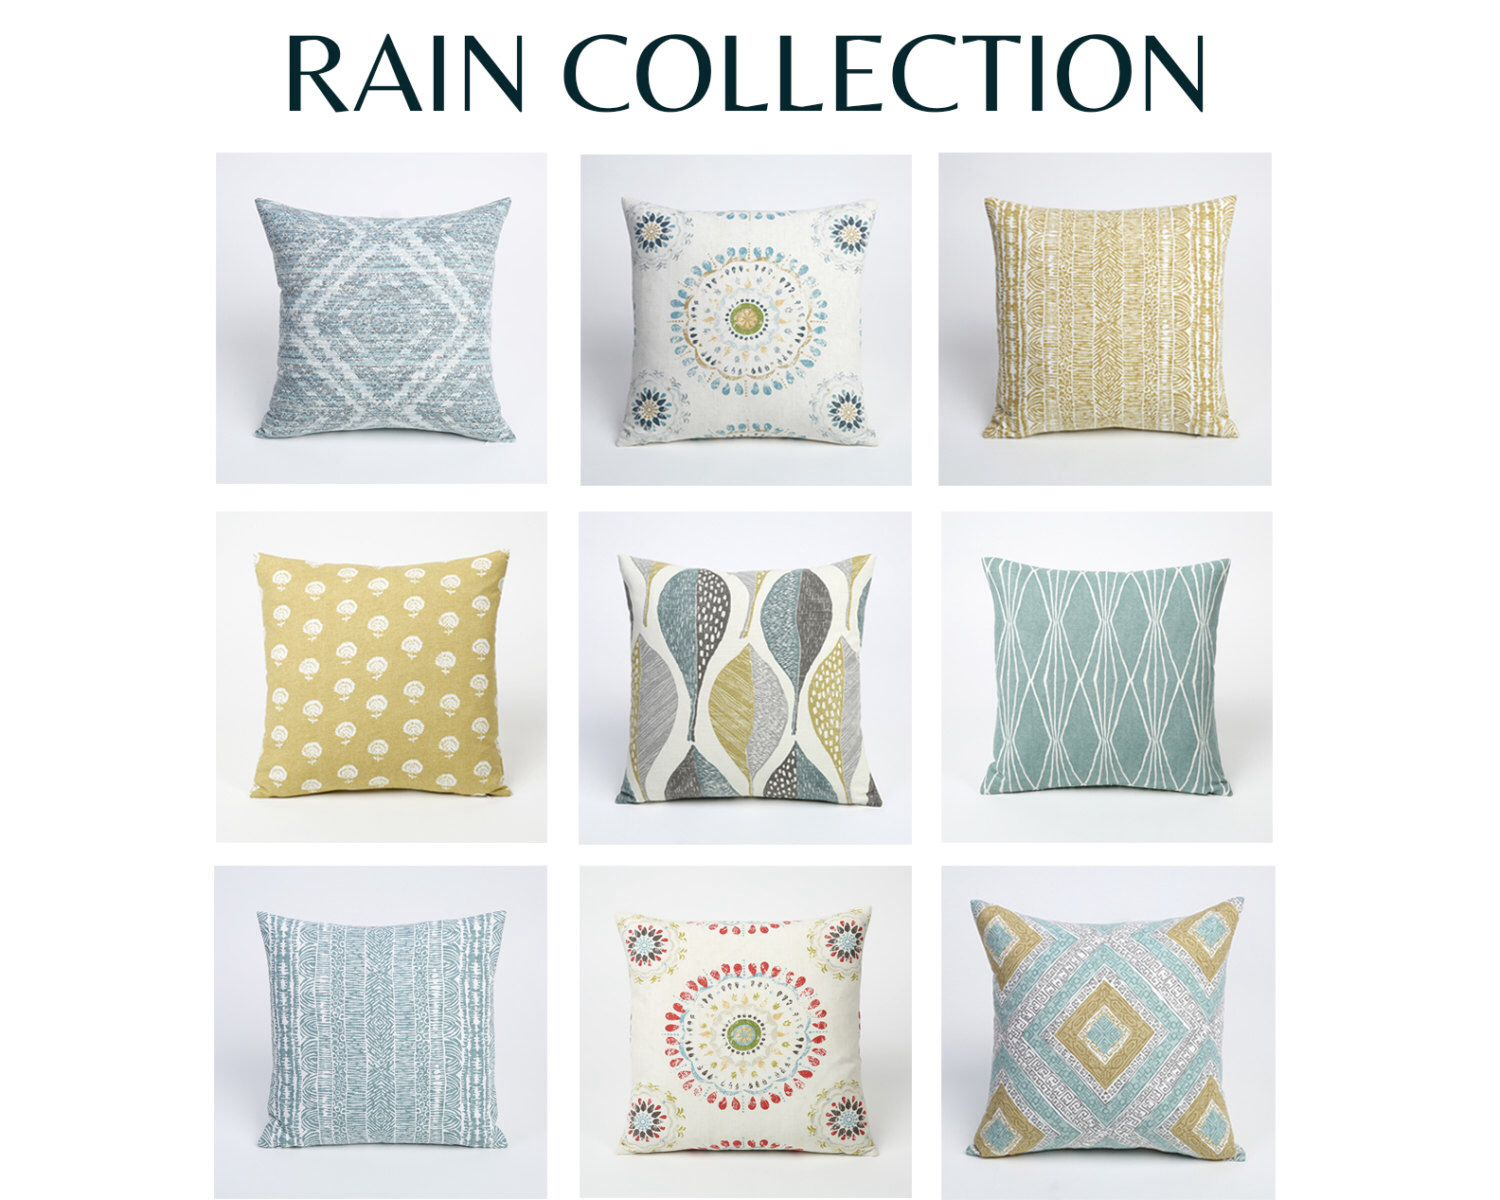 Rain Collection 26 x 26 pillow cover pillow covers 26 x 26 by